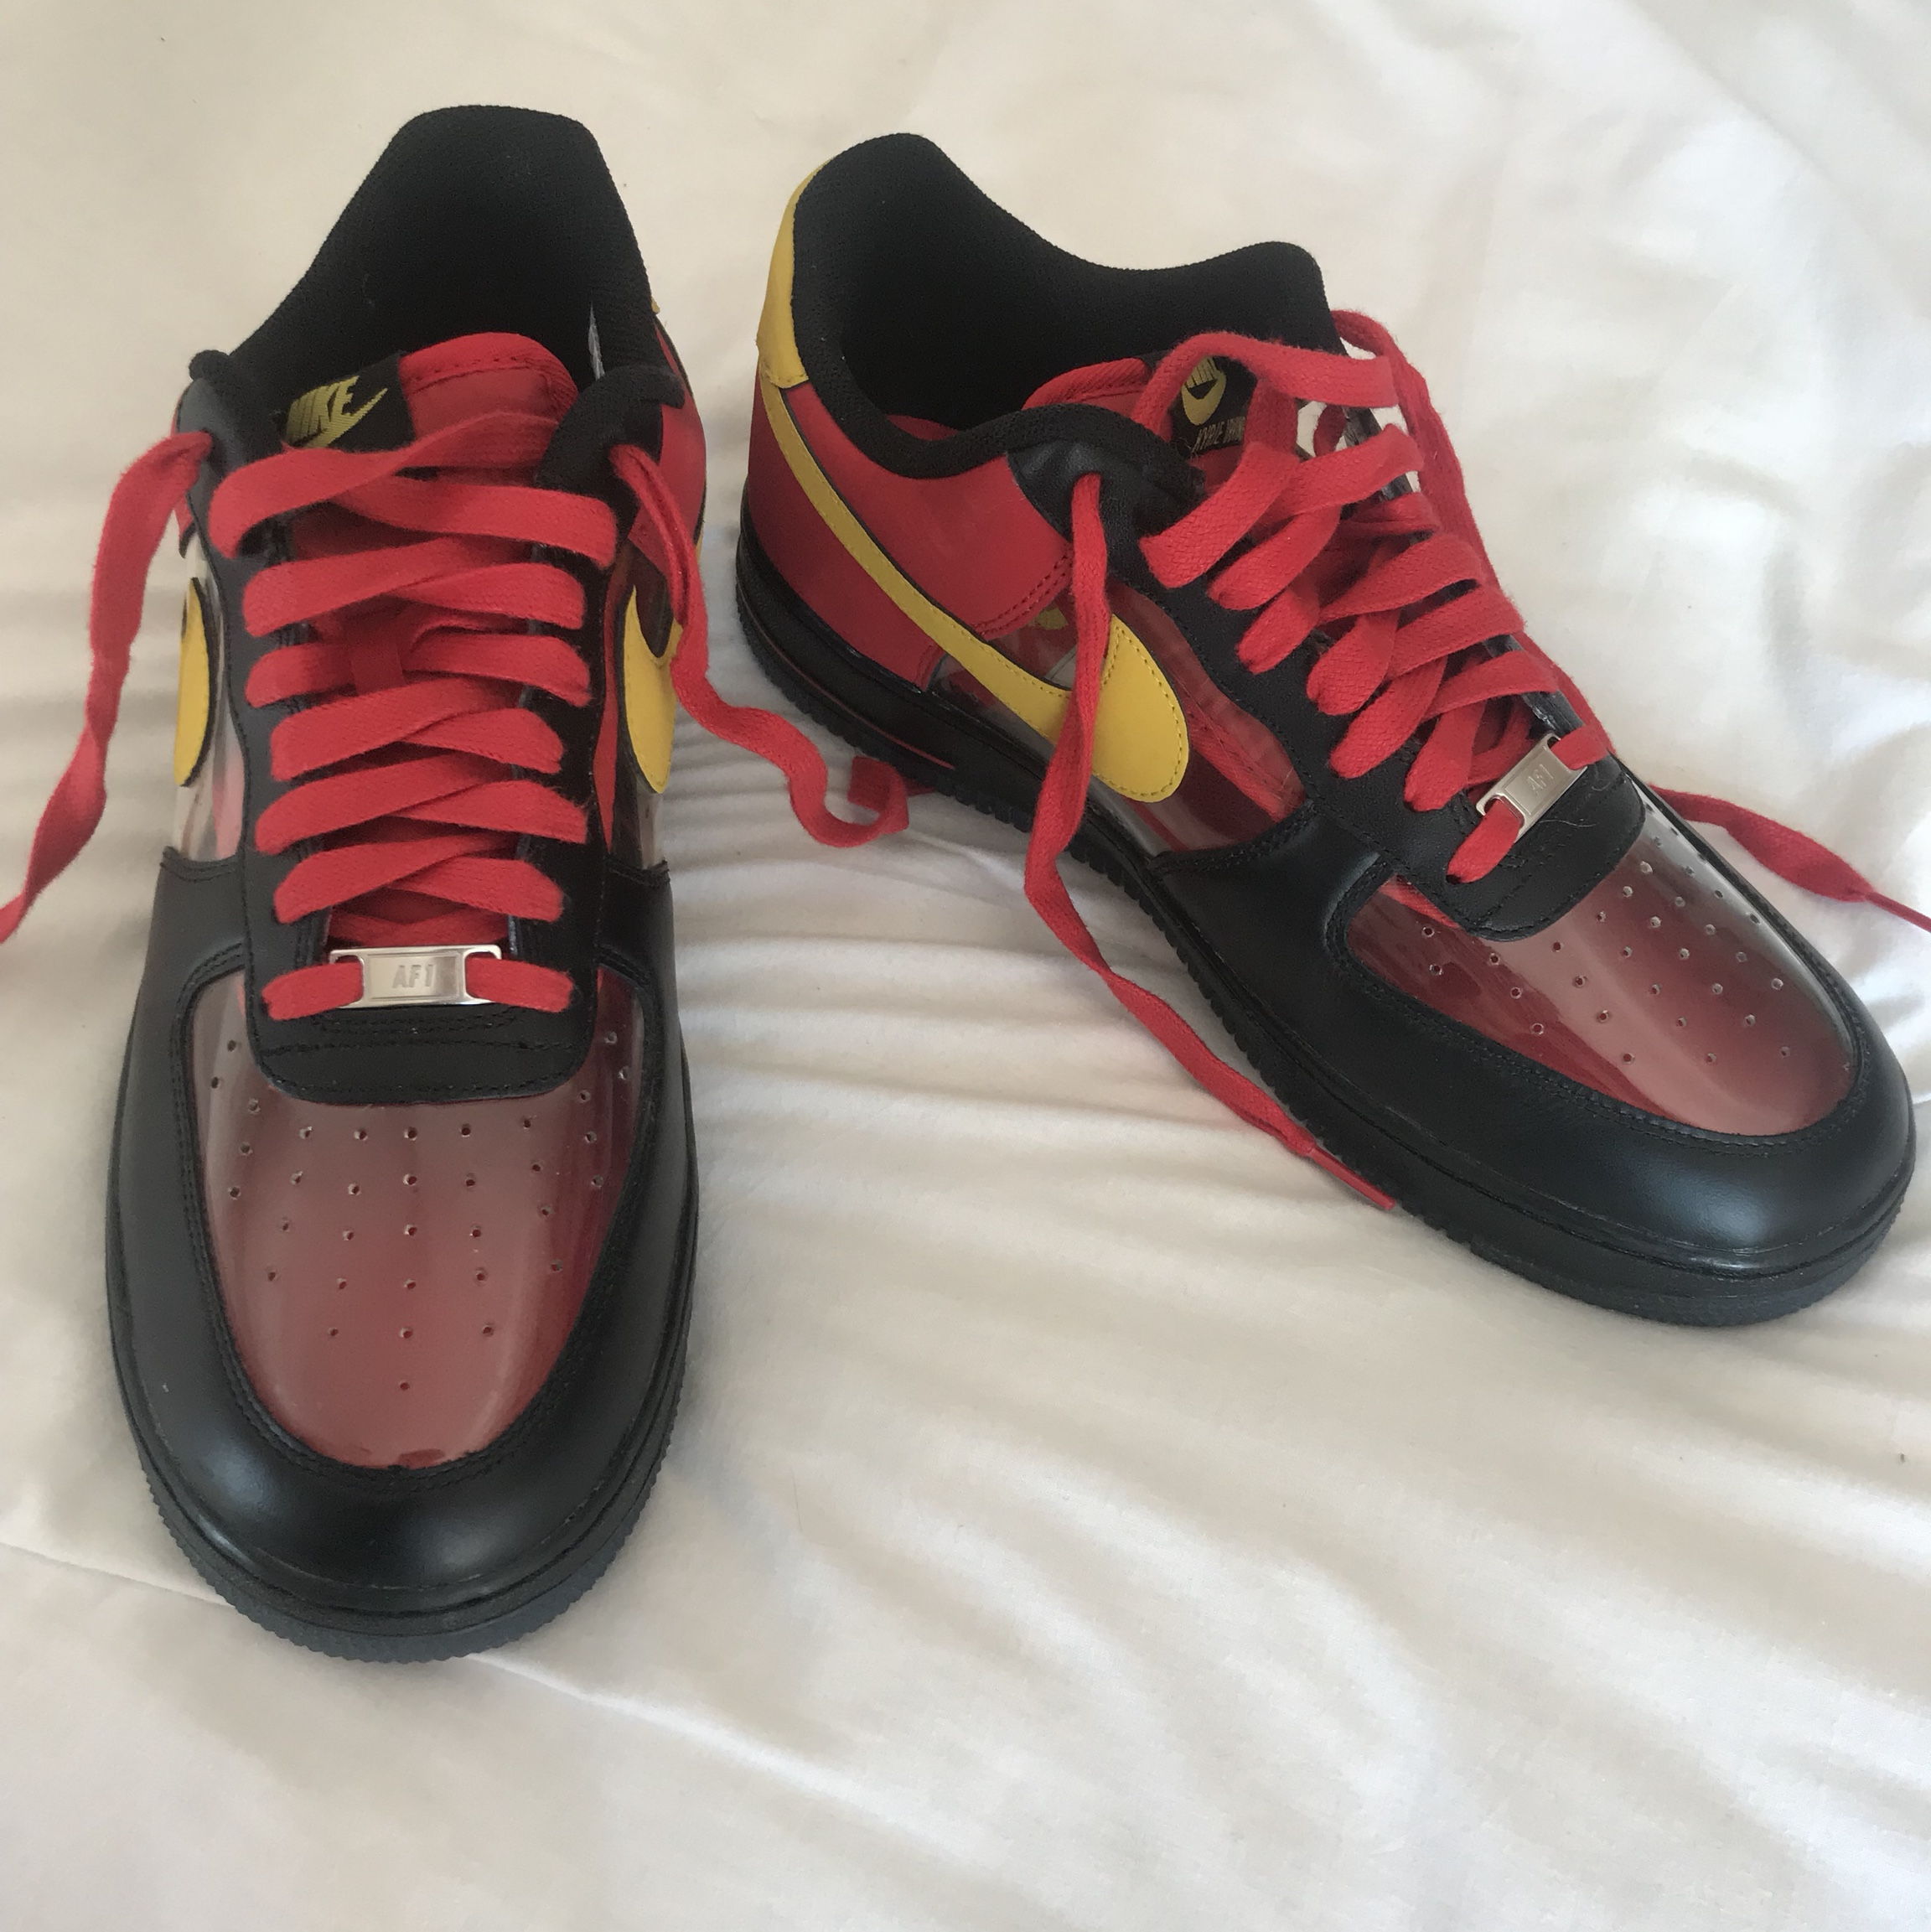 buy popular 1f6f2 6bf84 NIKE AIR FORCE ONE, KYRIE IRVING. Red and Yellow Air... - Depop